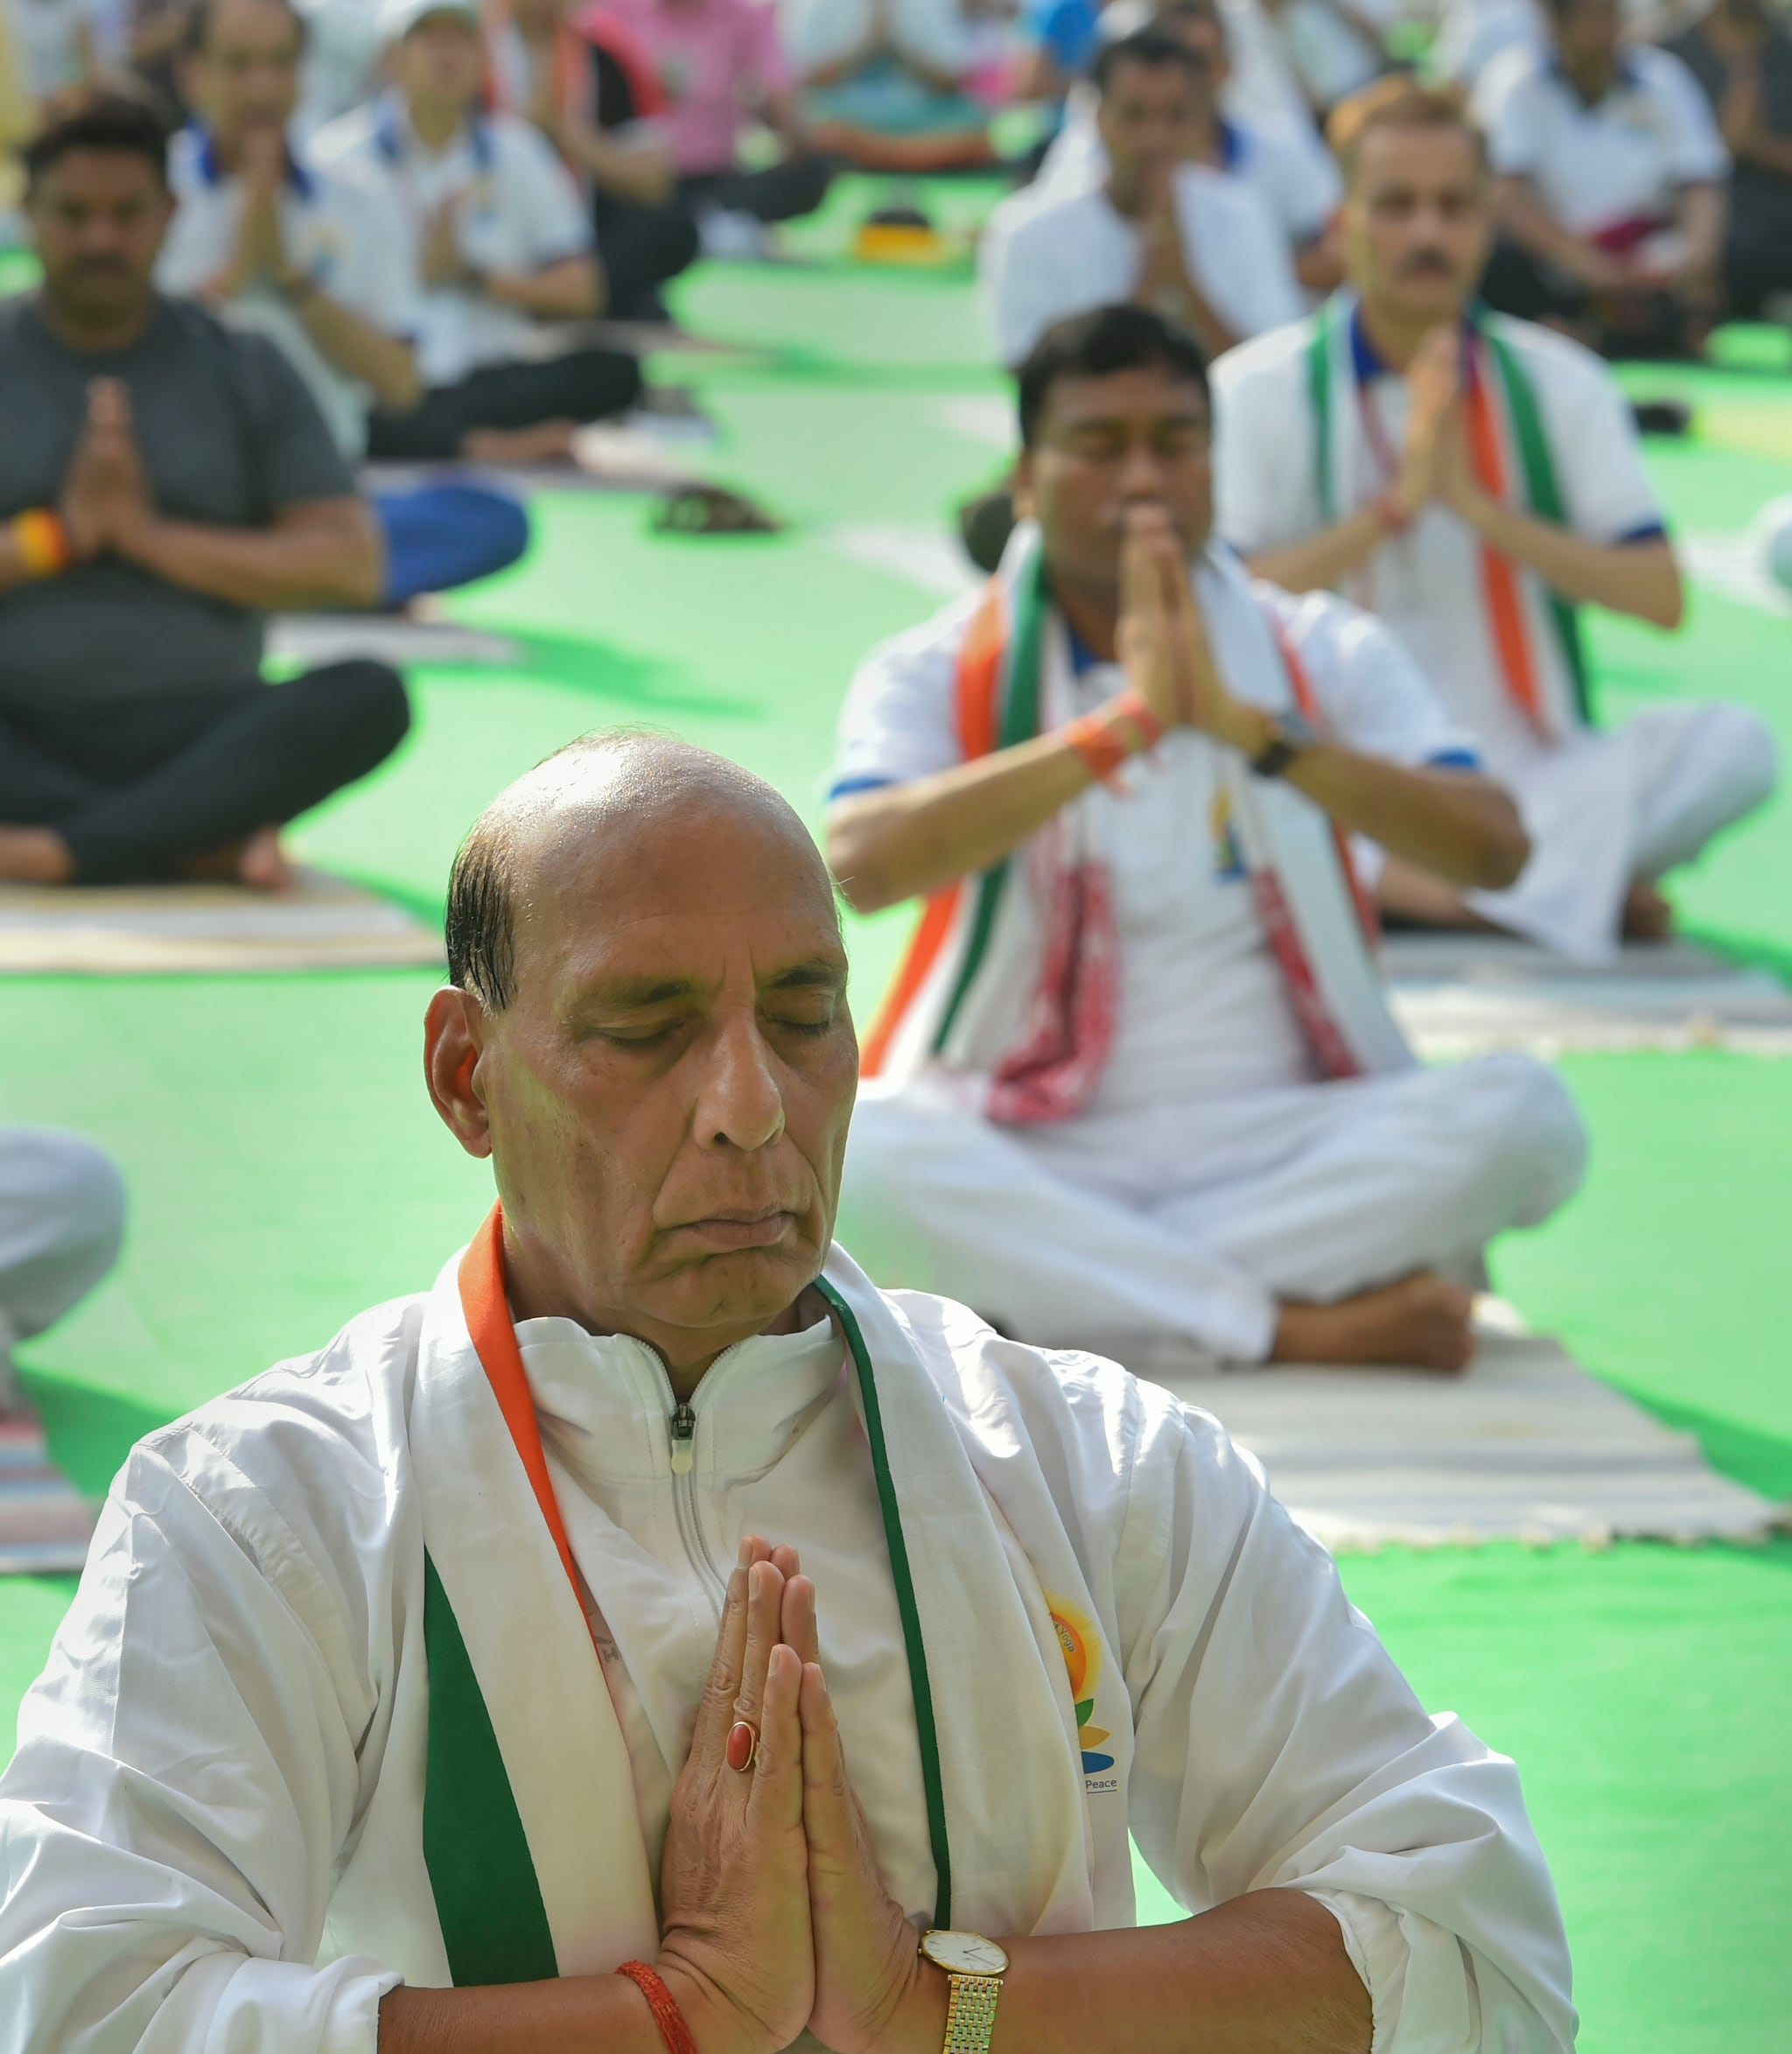 New Delhi: Defence Minister Rajnath Singh performs yoga during the 5th International Day of Yoga at Rajpath, in New Delhi, Friday, June 21, 2019. (PTI Photo/Arun Sharma)